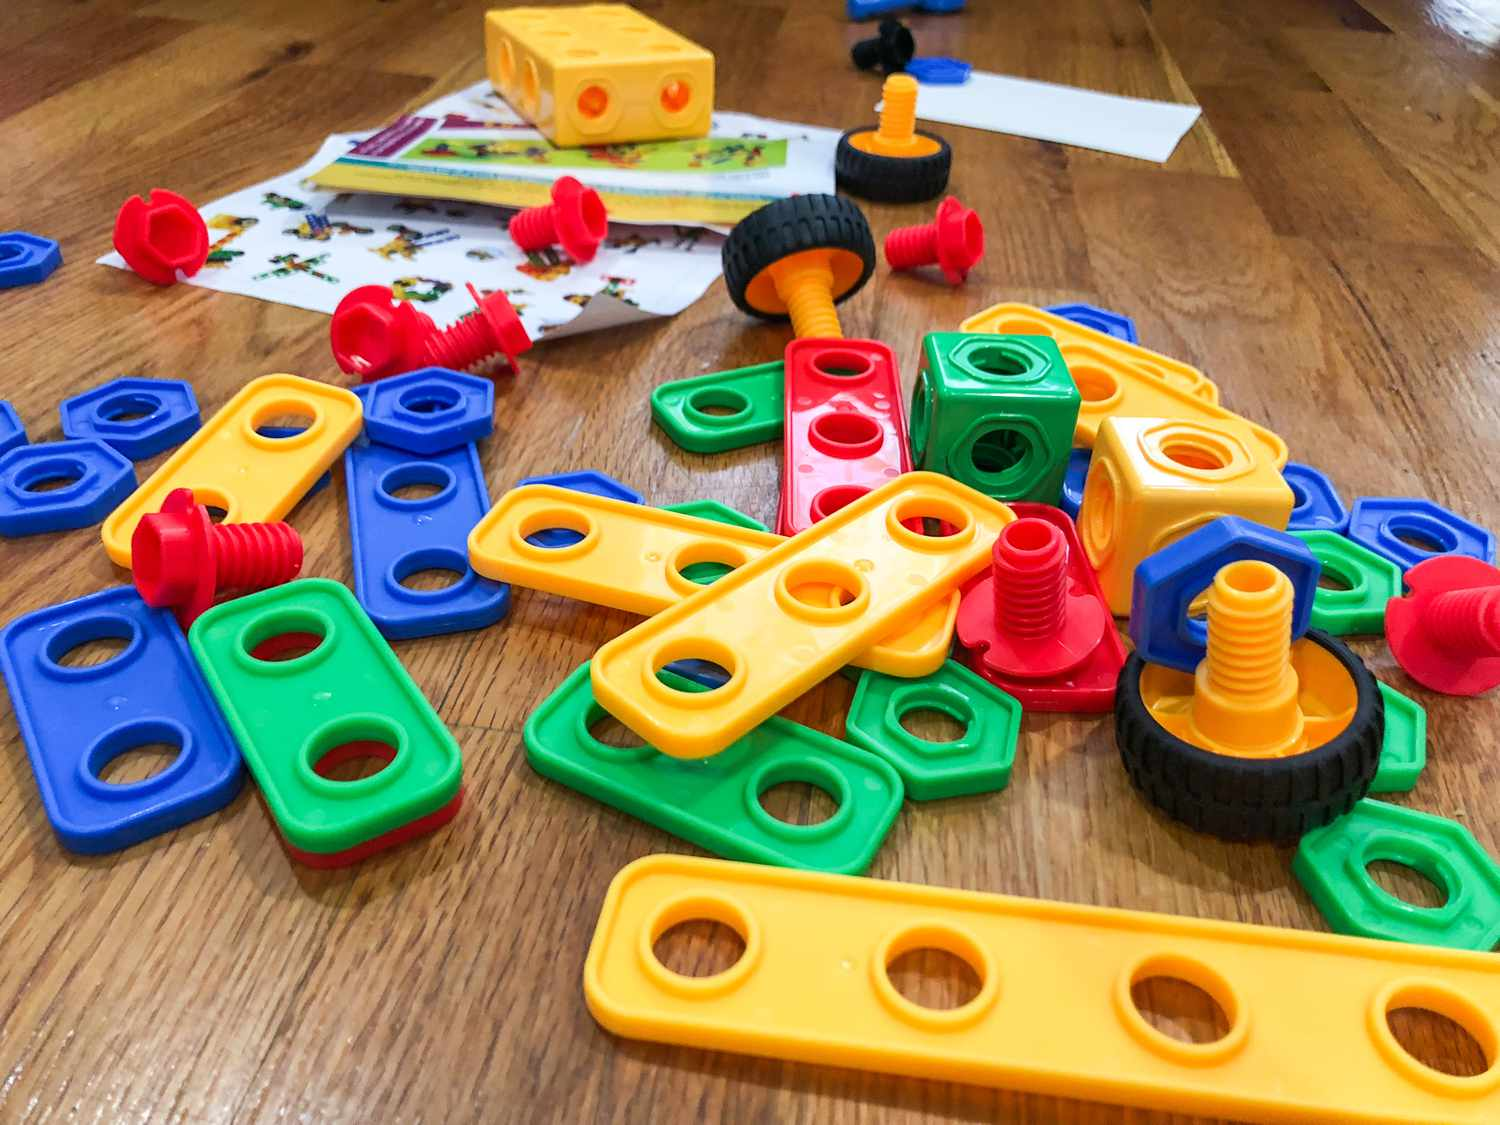 76de7be3d024 The 10 Best Toys for 3-Year-Olds in 2019